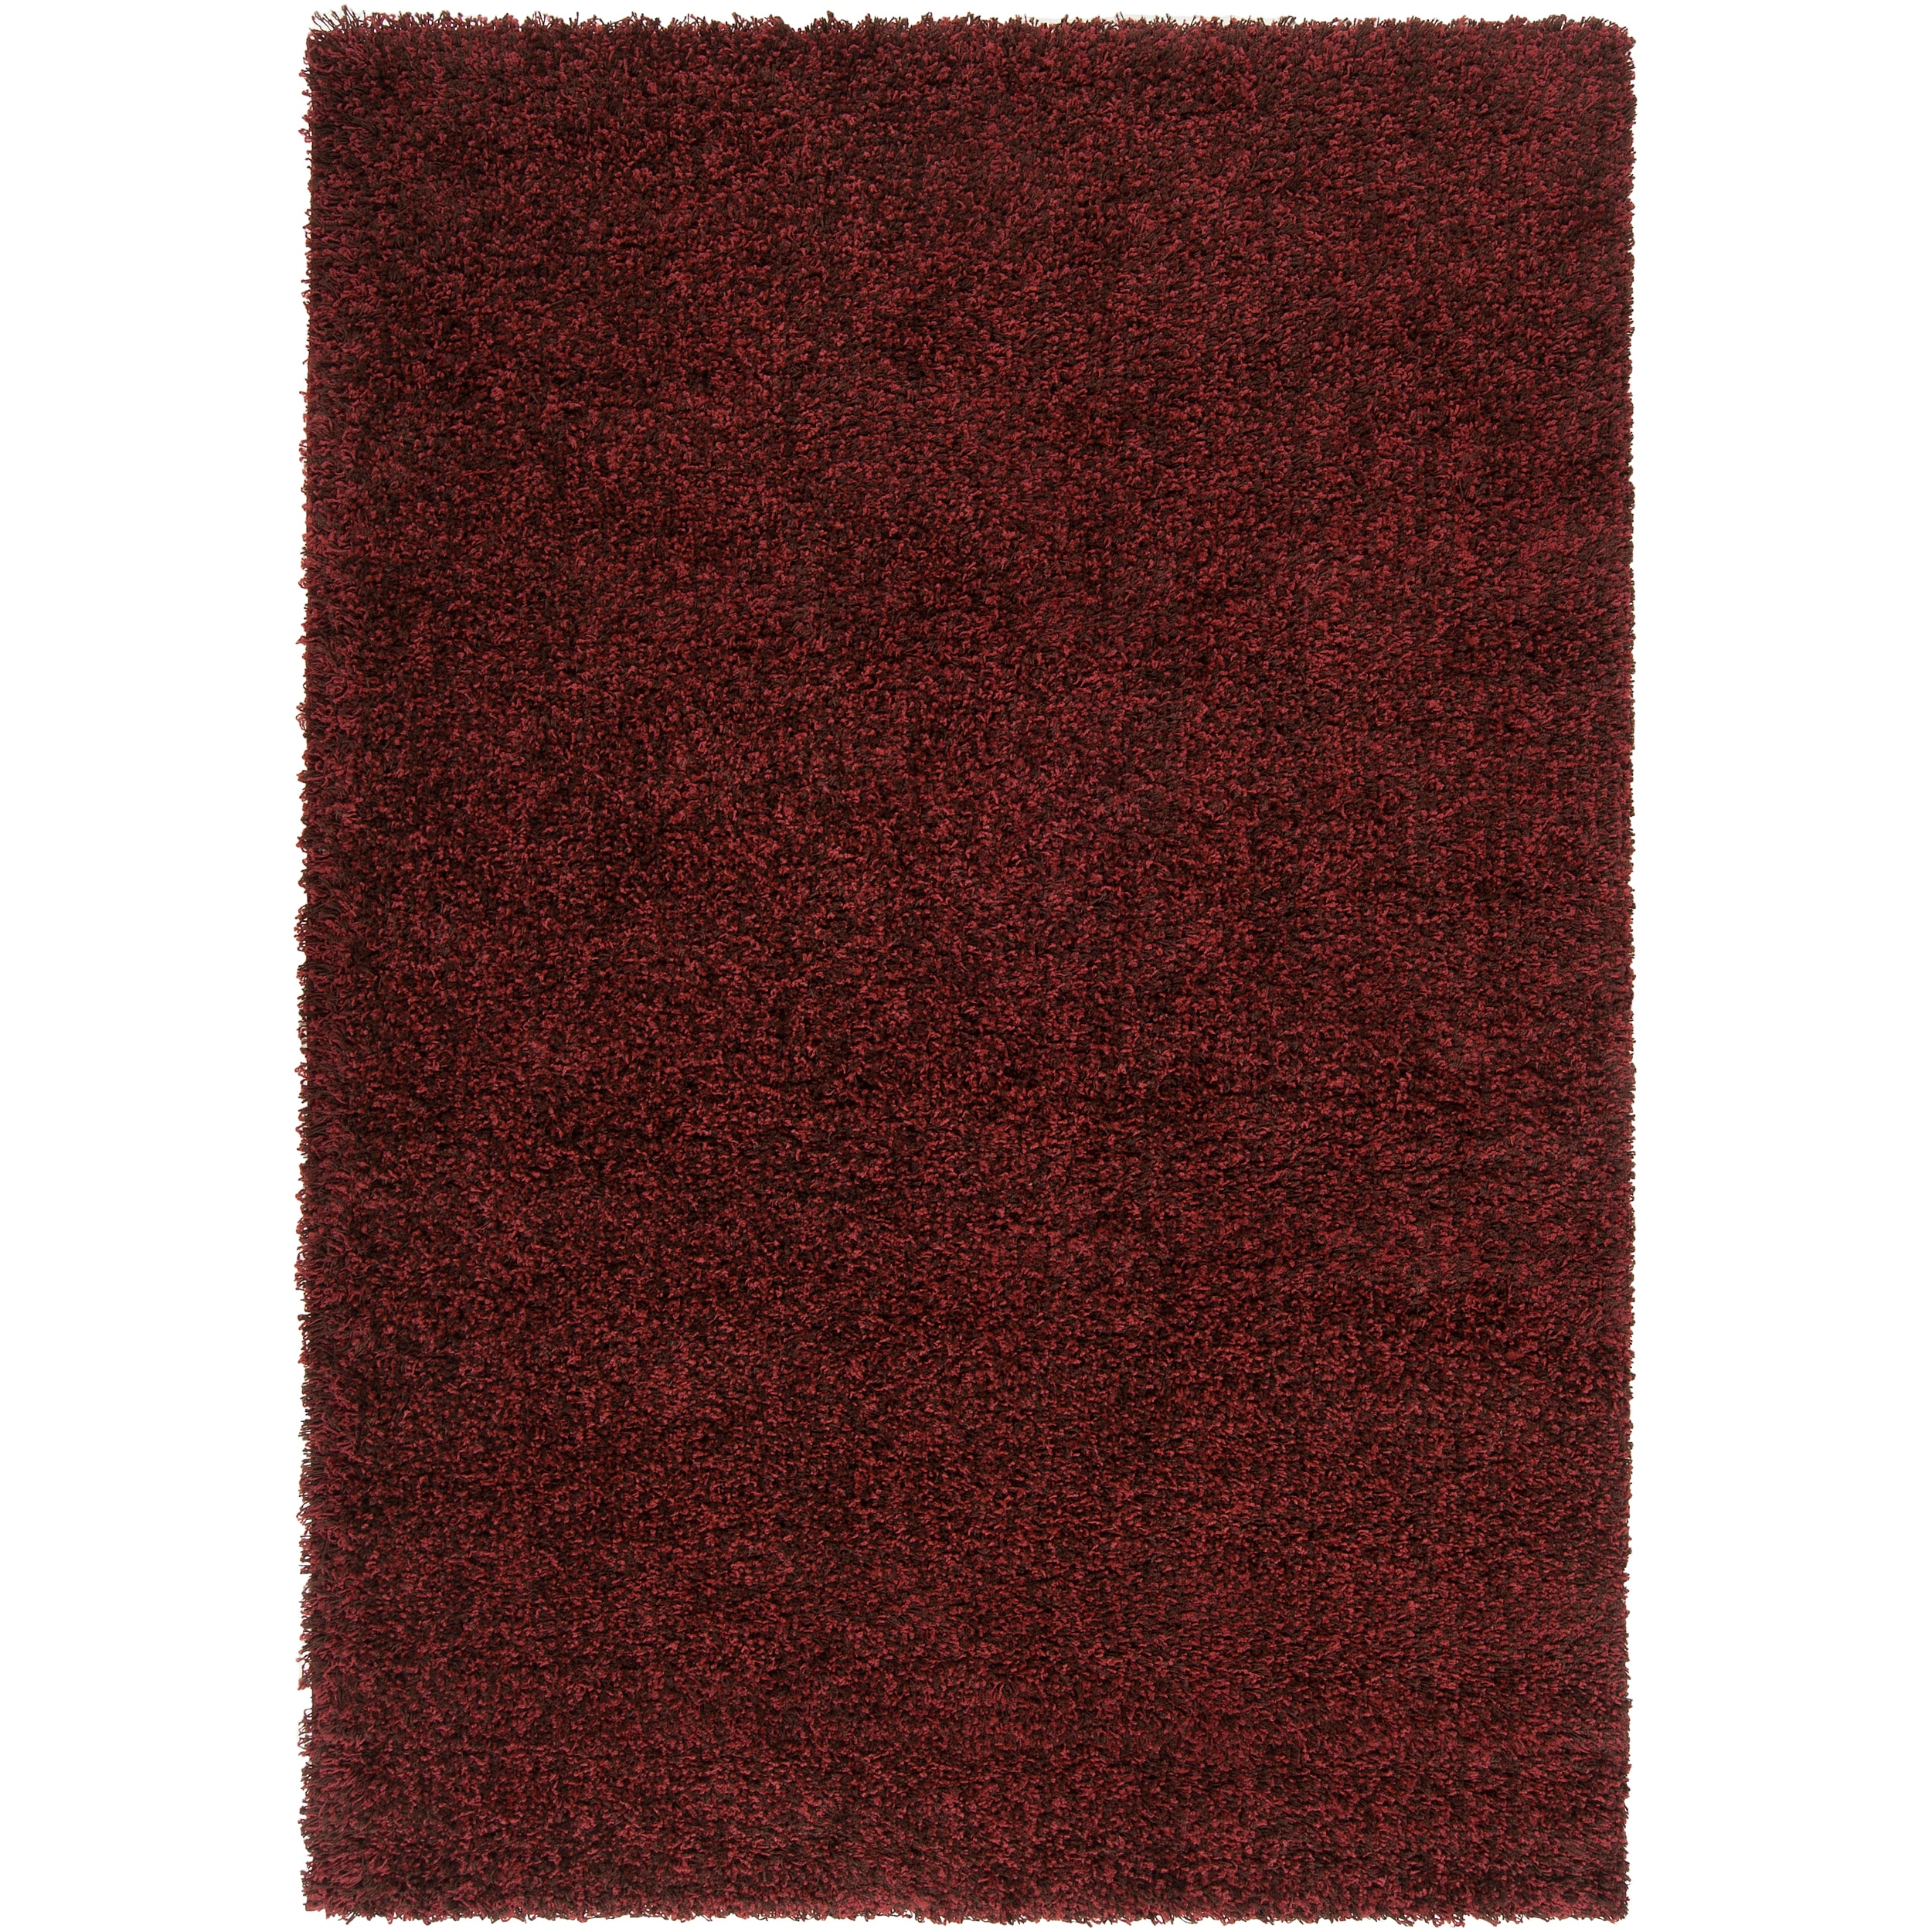 "Woven Burgundy Luxurious Soft Transitional Shag Rug (5'3"" x 7'6"")"